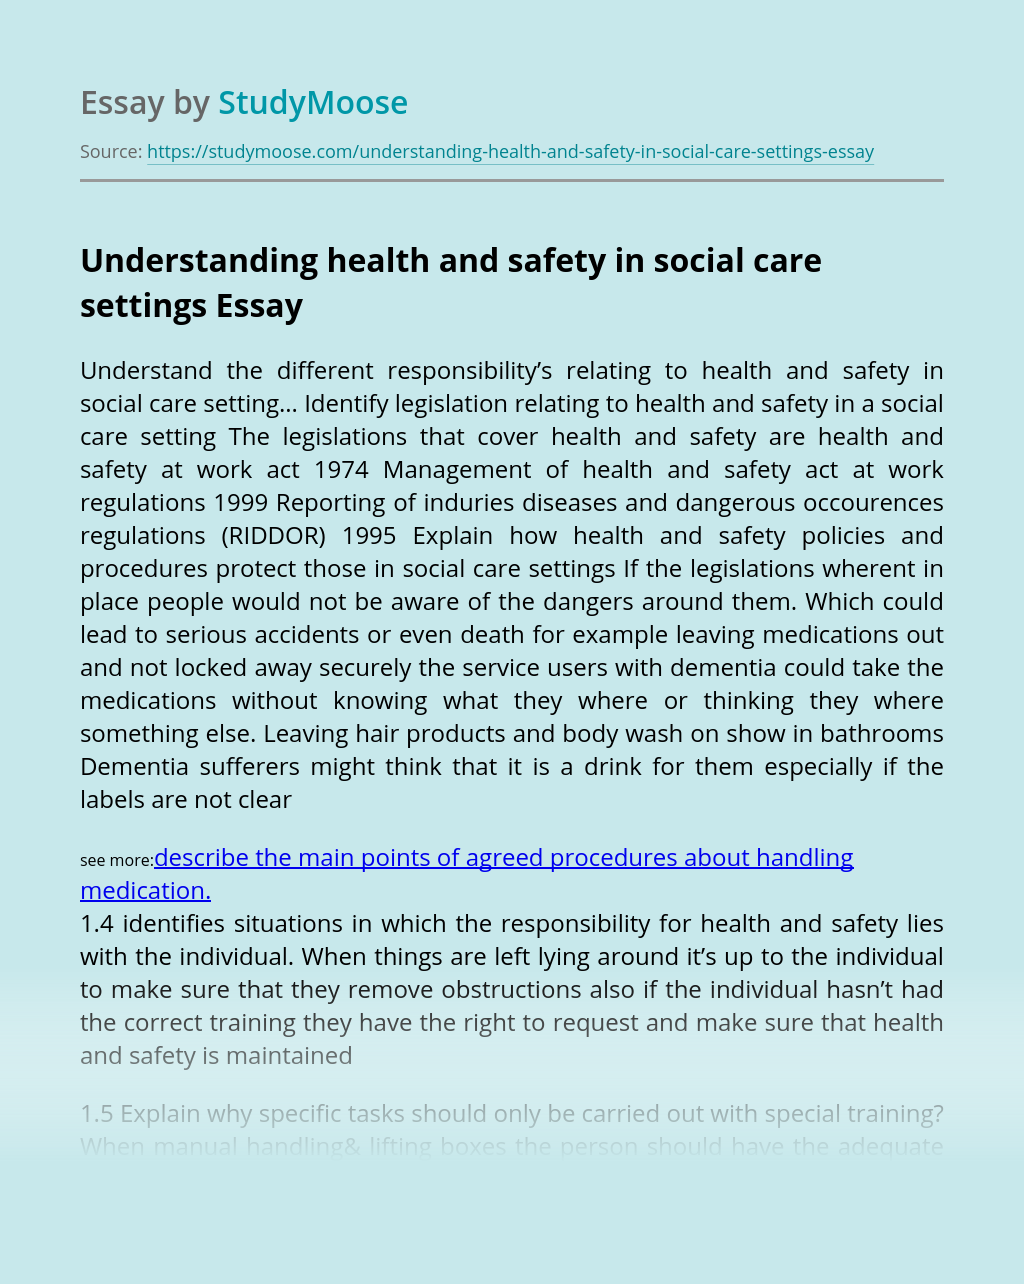 Understanding health and safety in social care settings